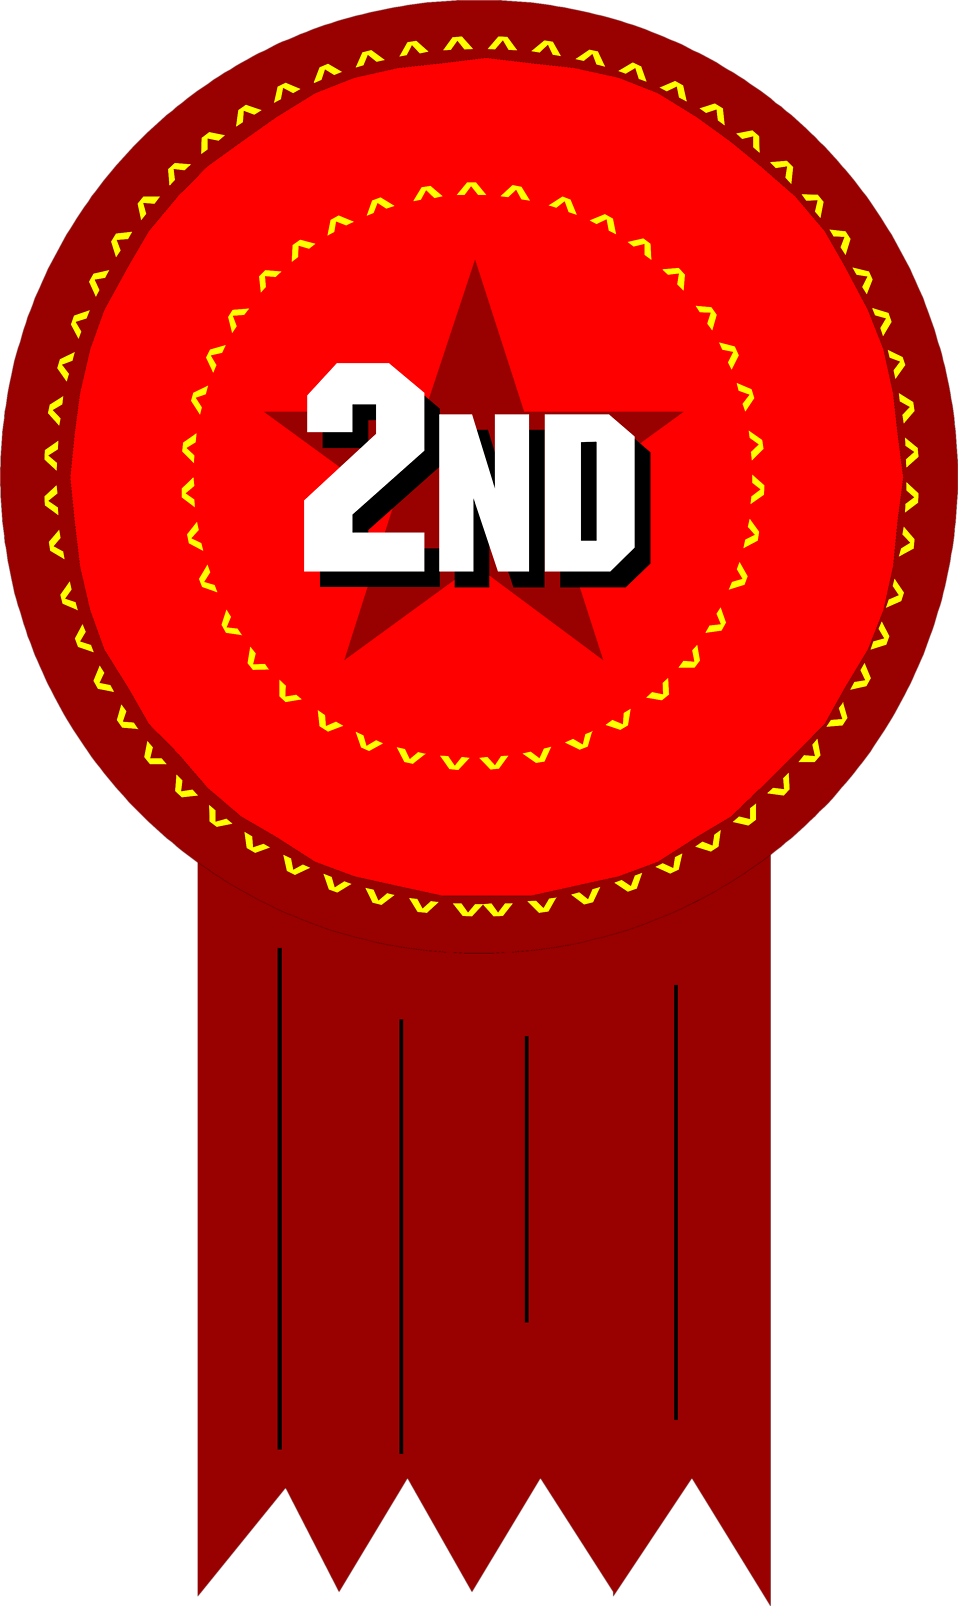 958x1606 Award Free Stock Photo Illustration Of A 2nd Place Ribbon